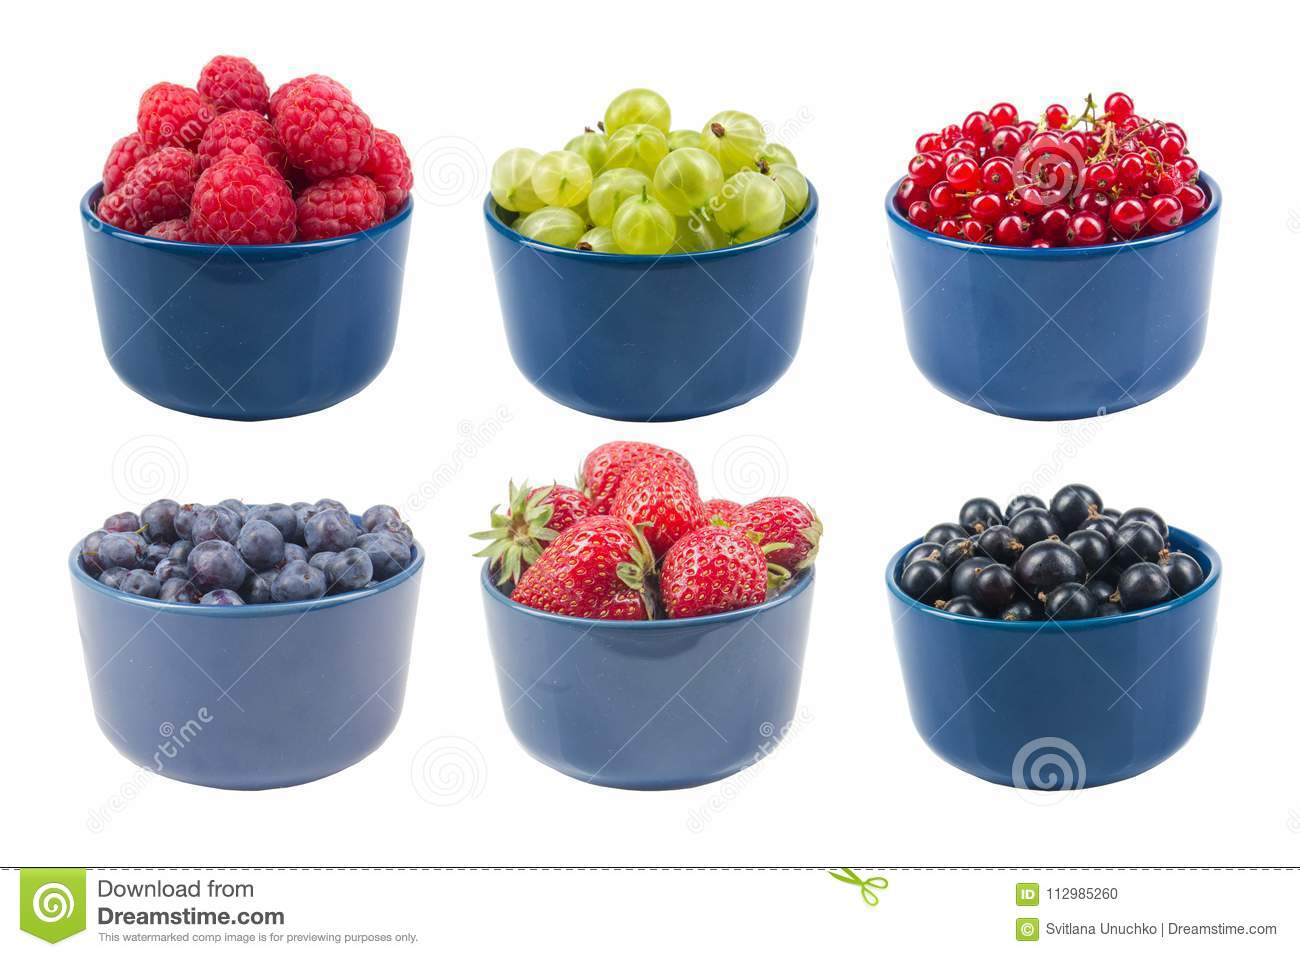 Berries on Isolated white background, bowl of Cherry, currant, blueberries, gooseberries, raspberries, blackberries